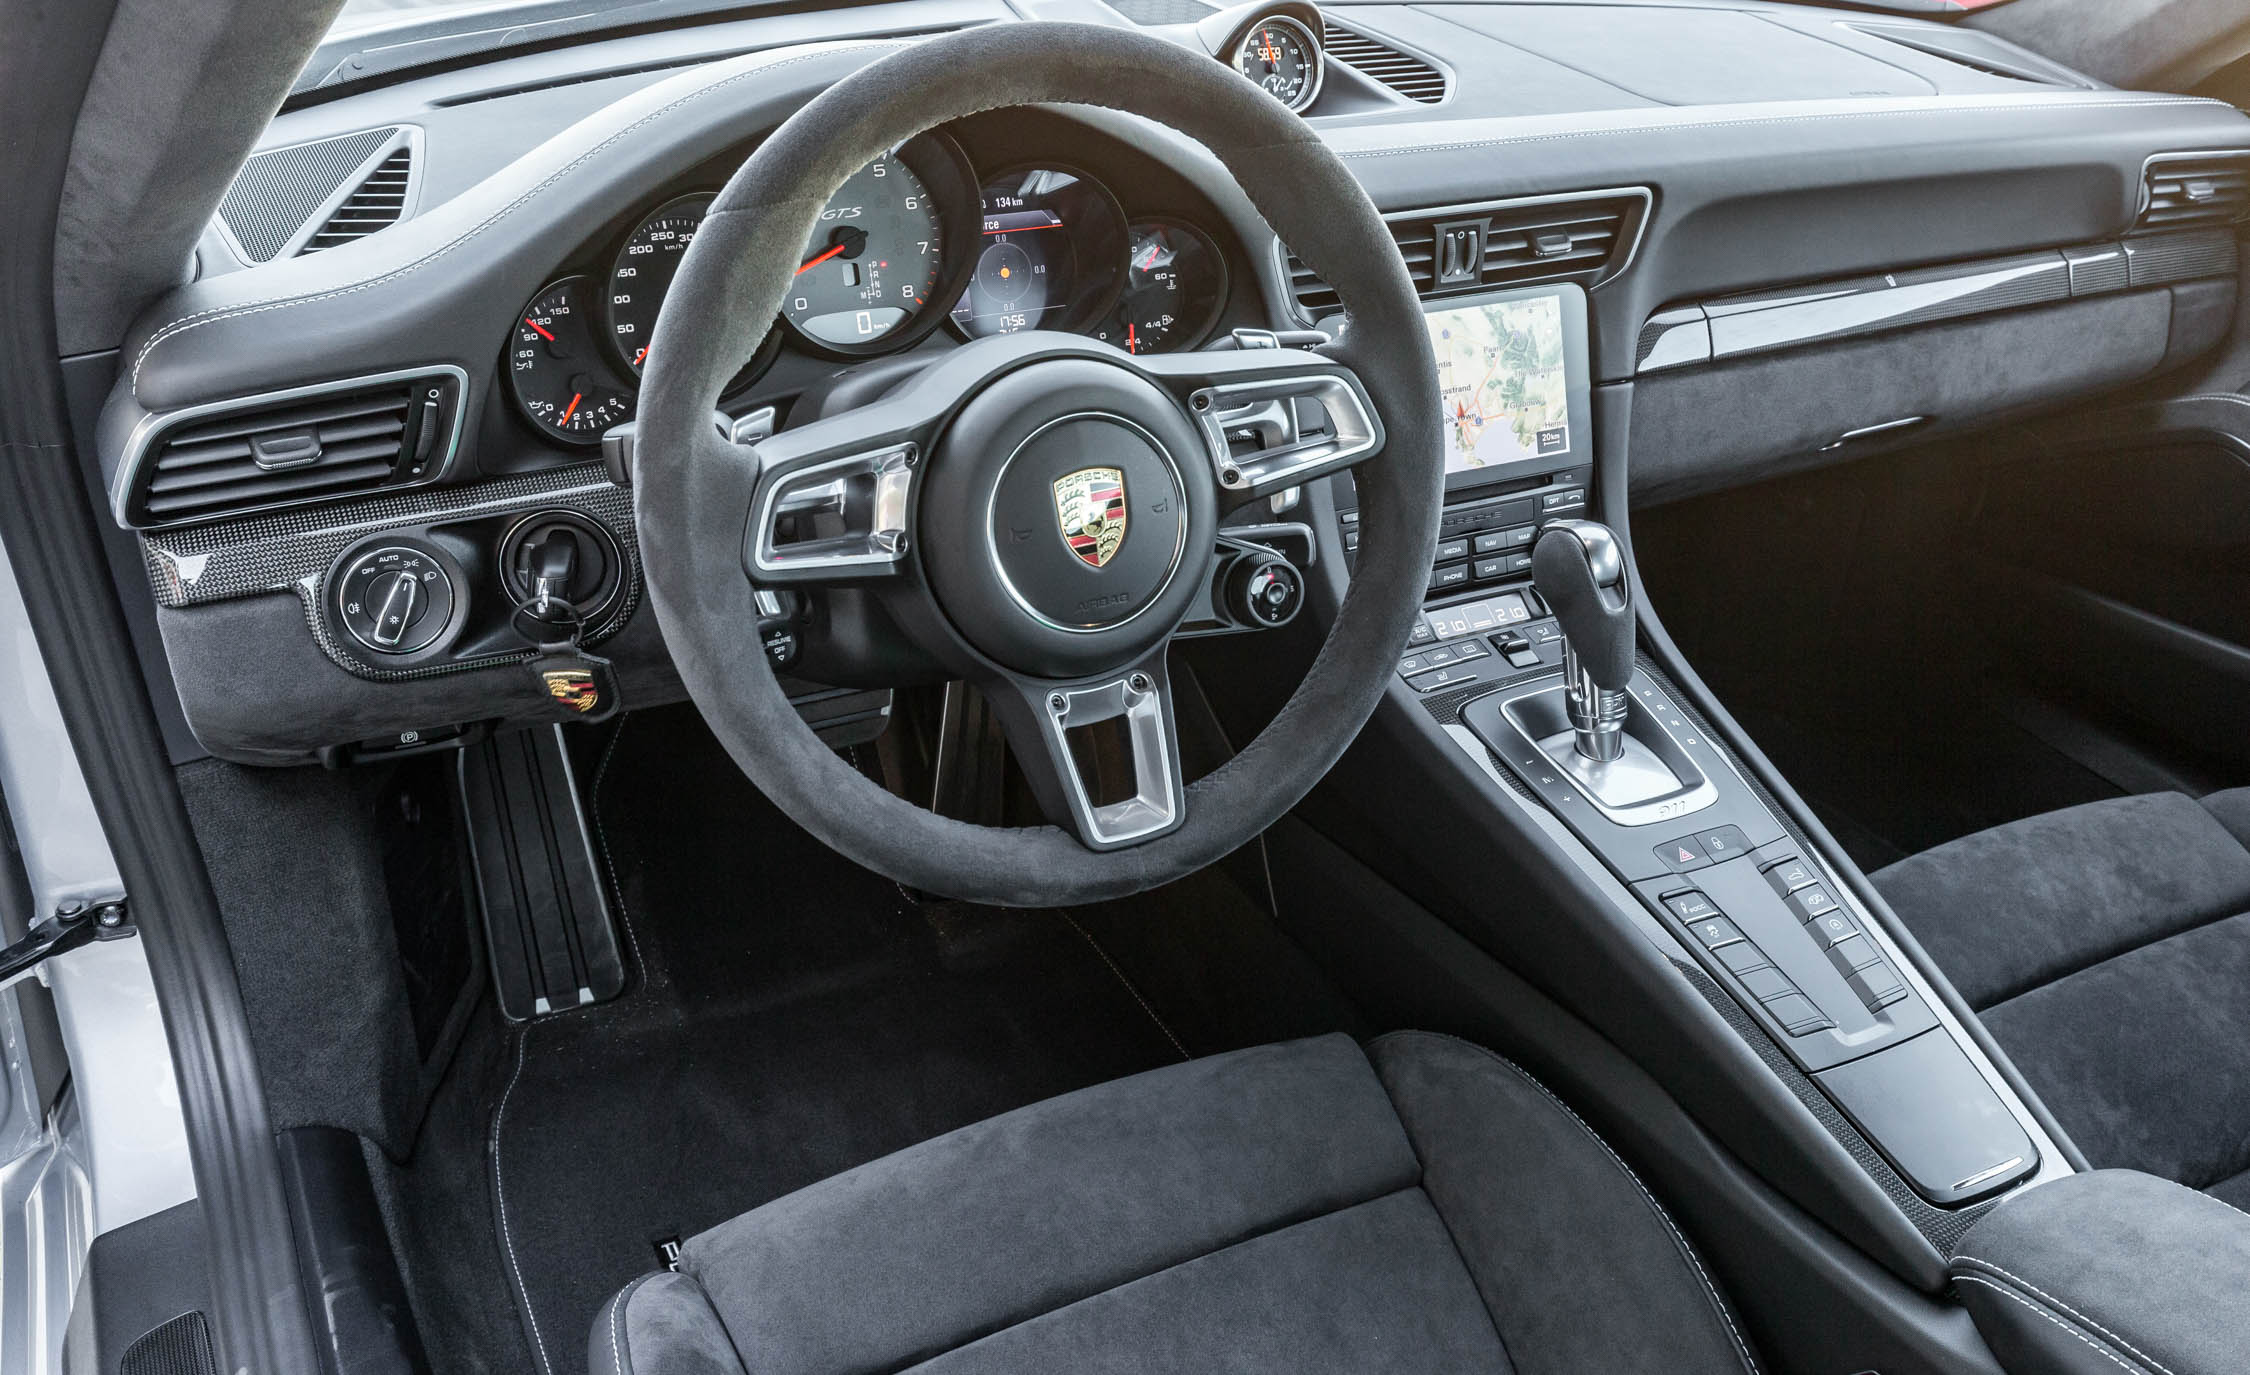 2017 Porsche 911 Carrera GTS Coupe Interior Driver Cockpit Steering (Photo 50 of 97)